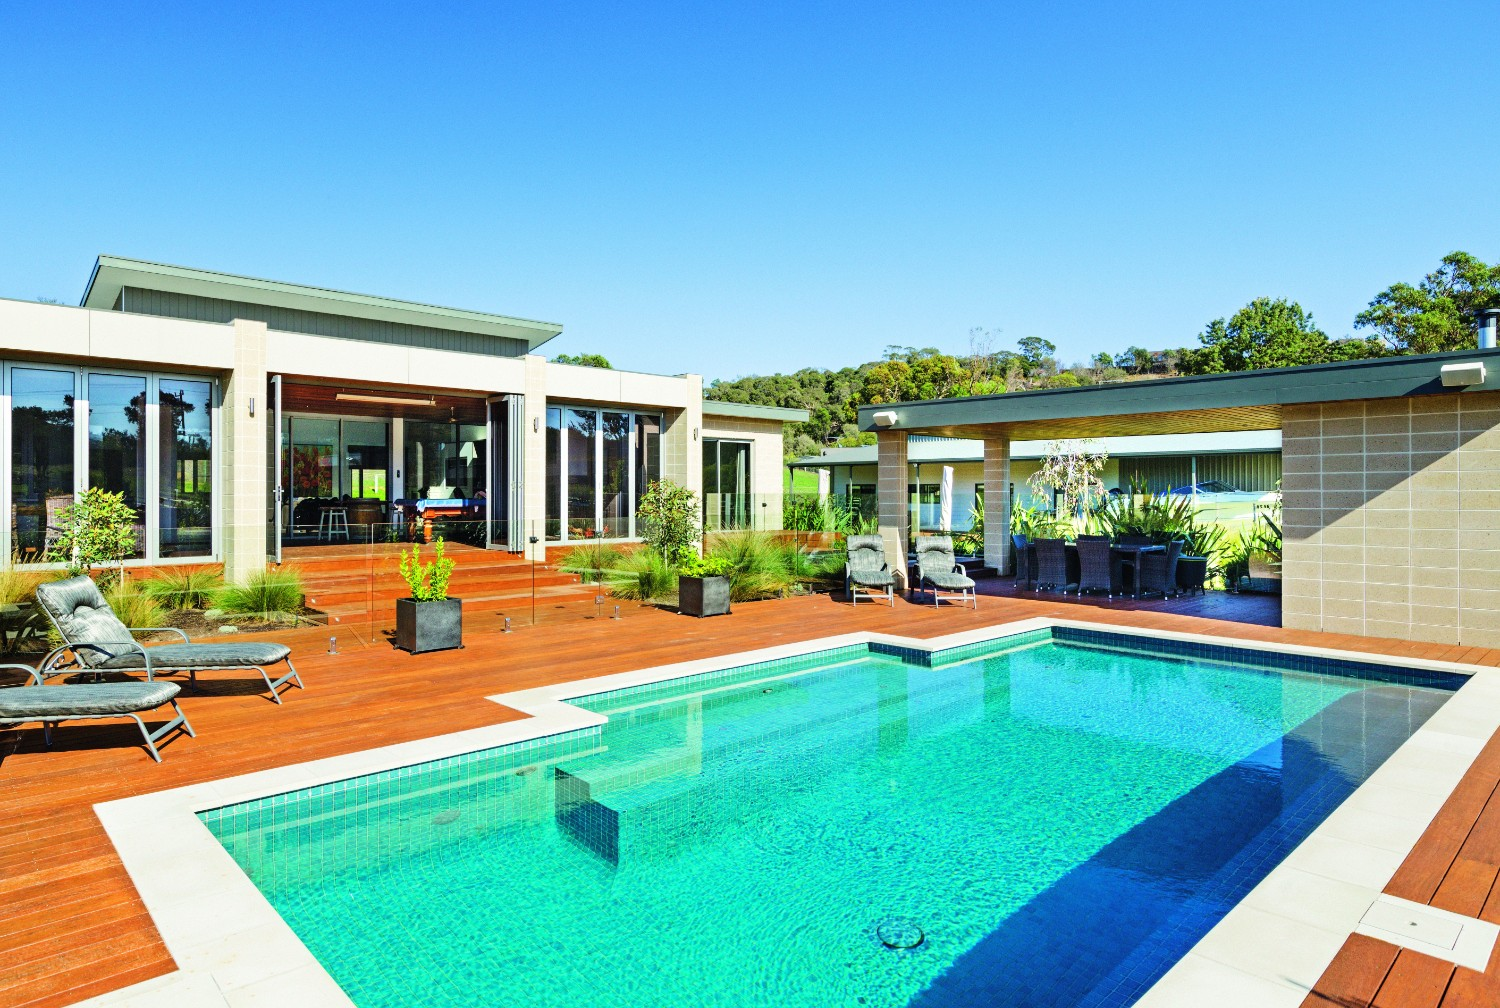 Country pool escape: rural tranquility - side view of pool and house